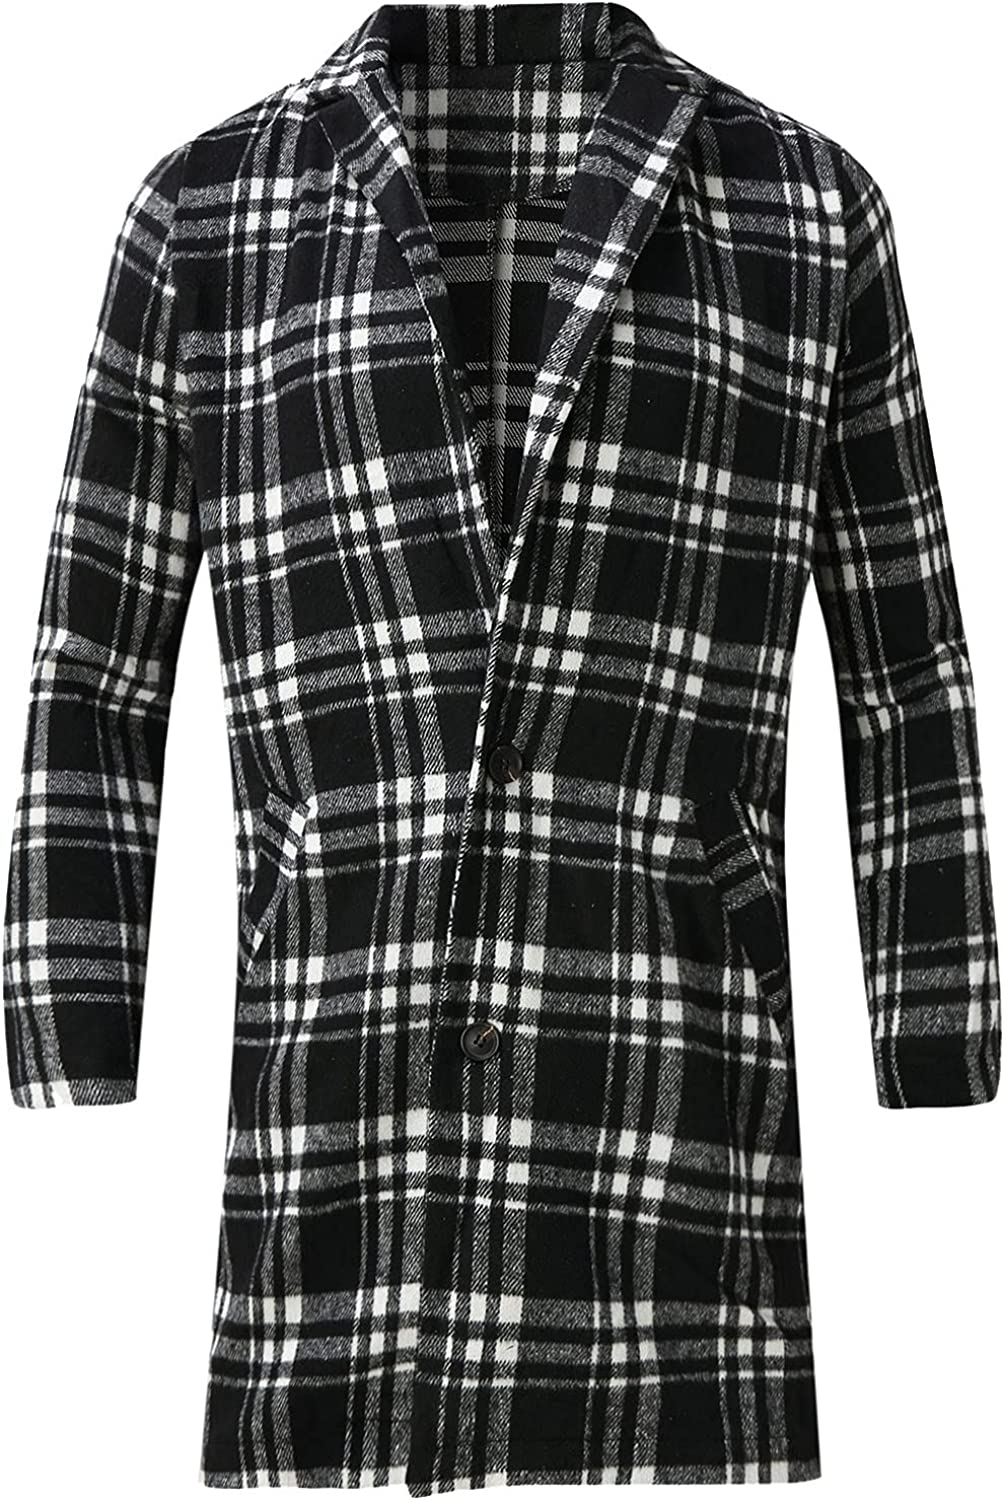 Huangse Men's Casual Notched Collar Plaid Single Breasted Wool Blend Formal Trench Top Coat Autumn Winter Long Peacoat